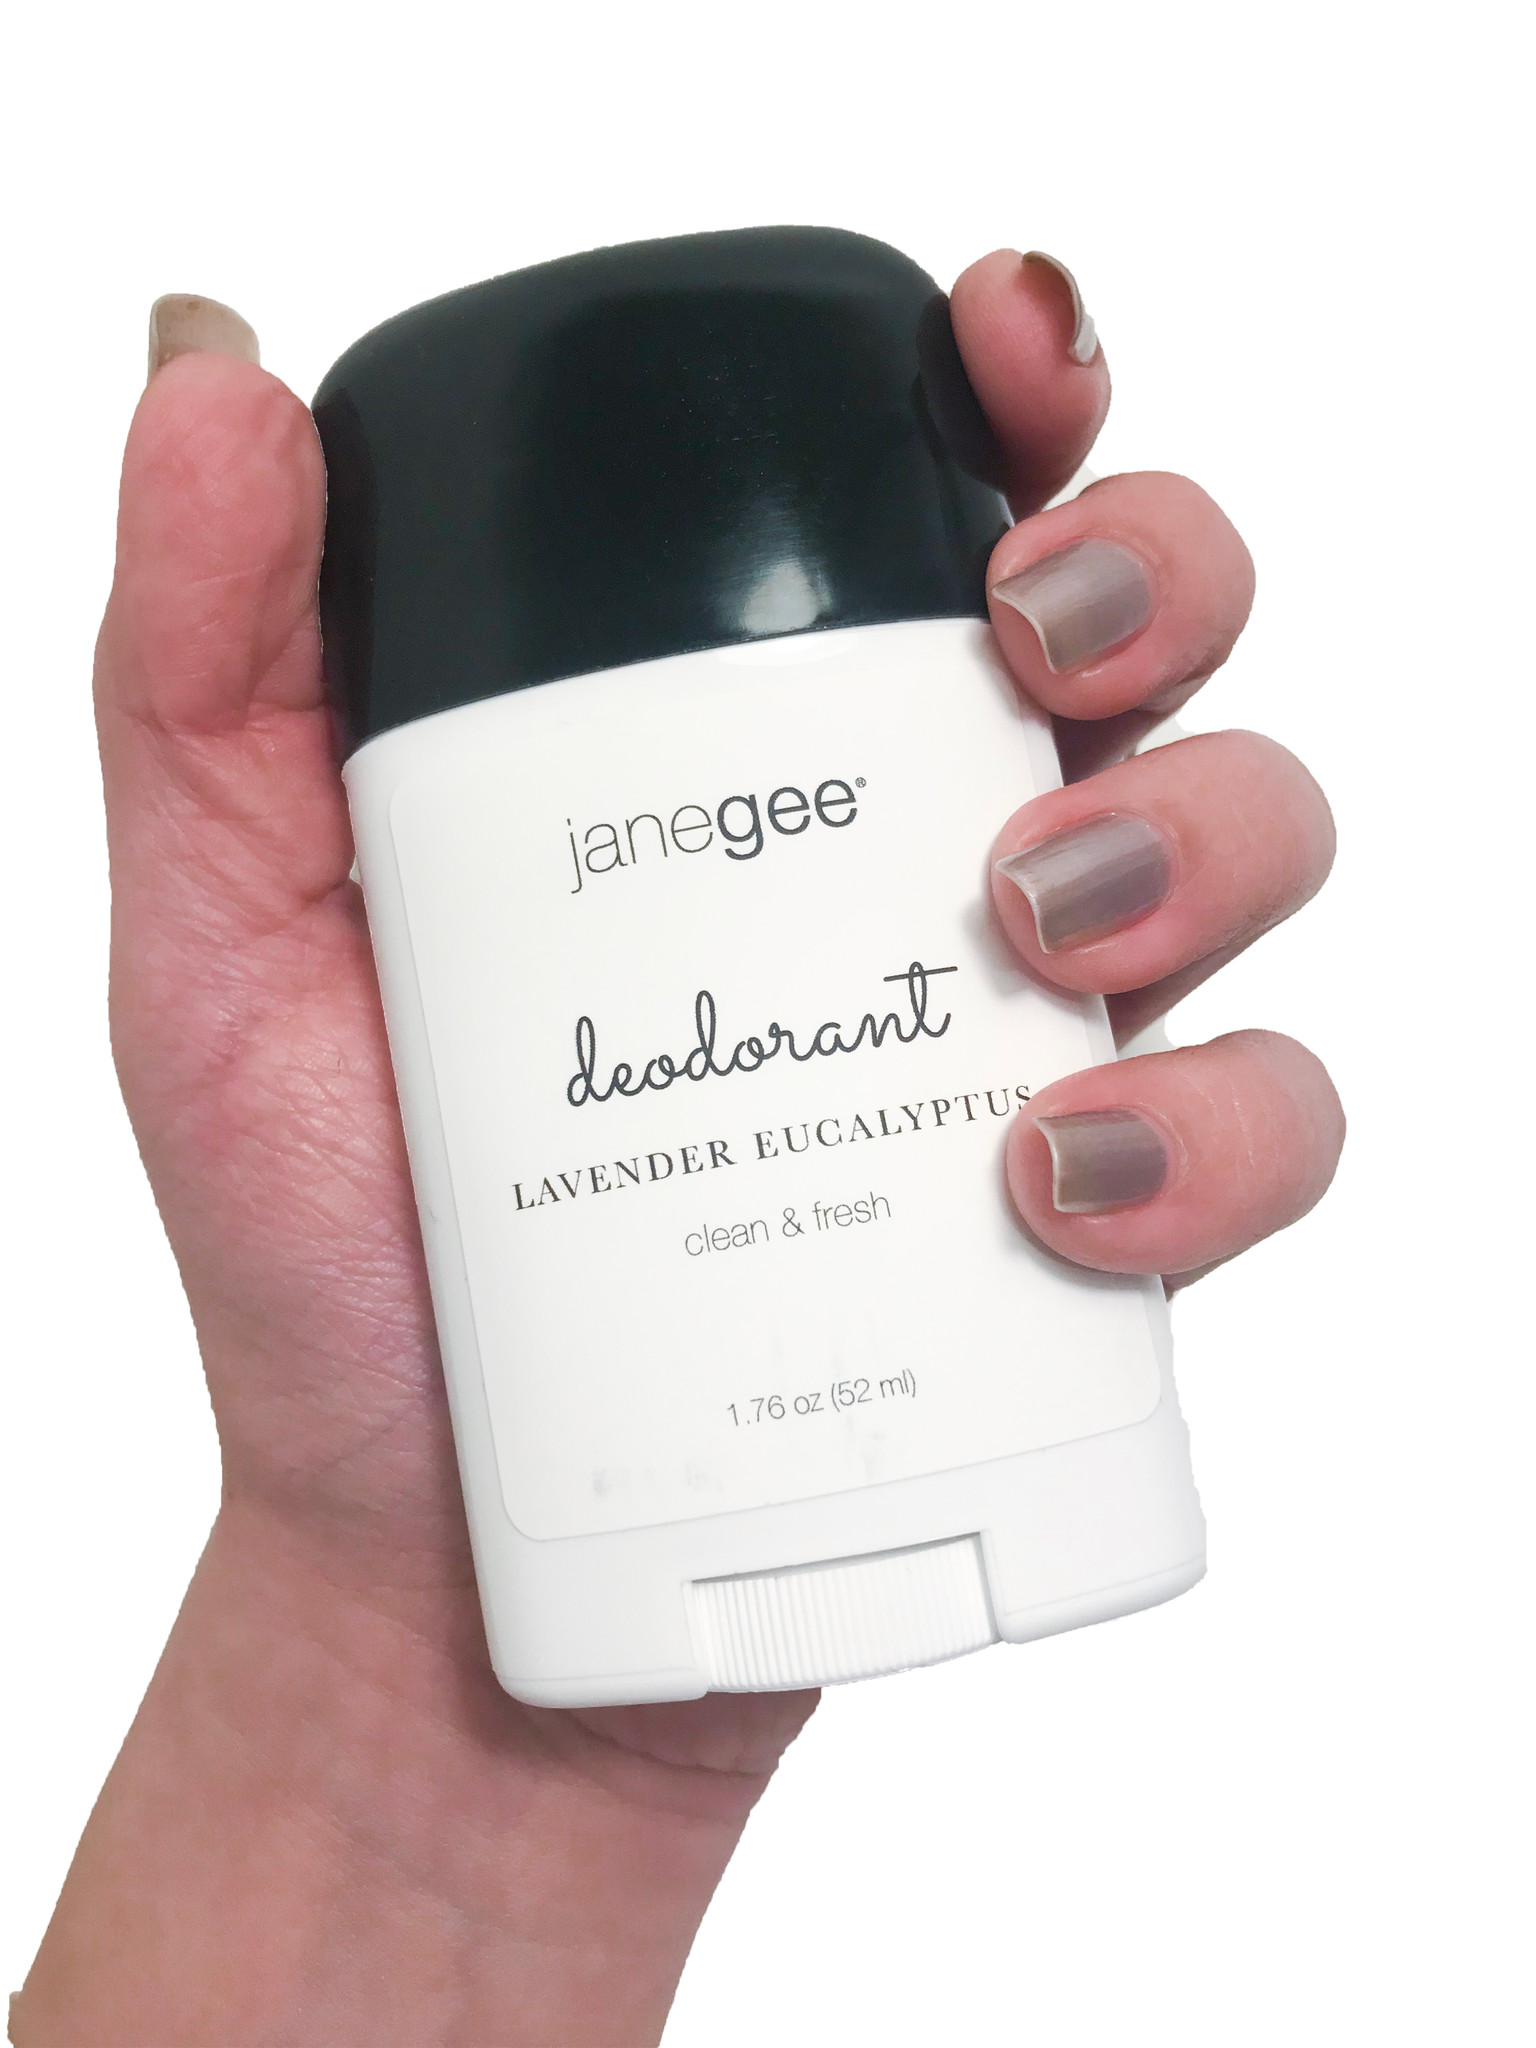 BLOG - Why You Need to be Using Natural Deodorant - janegee